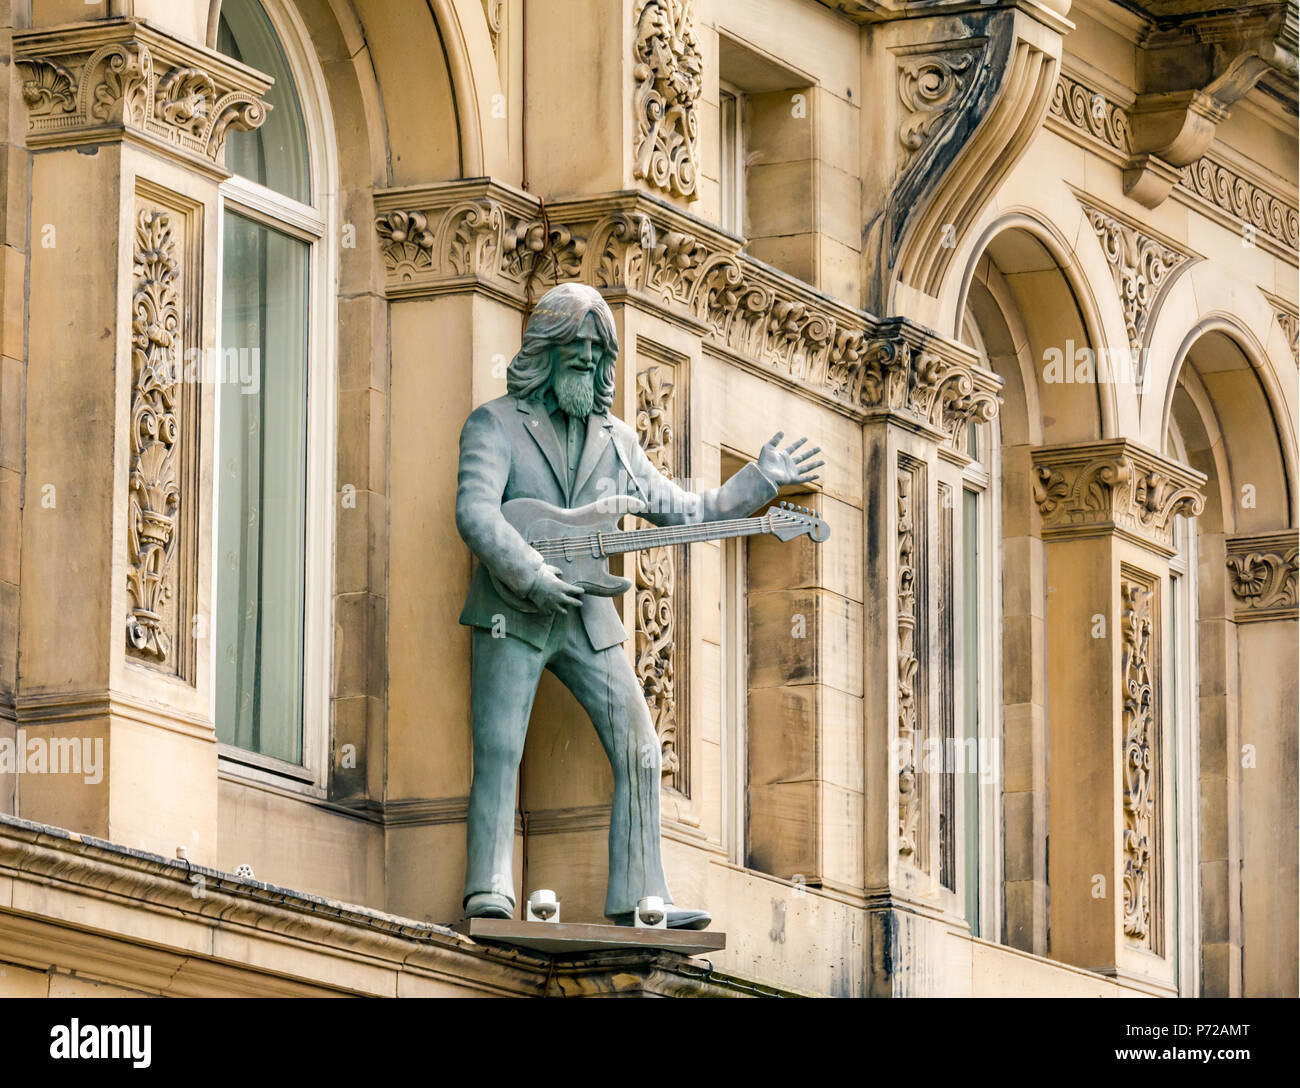 Statue of George Harrison playing a guitar outside Hard Day's Night Hotel, North John Street, Liverpool, England, UK - Stock Image